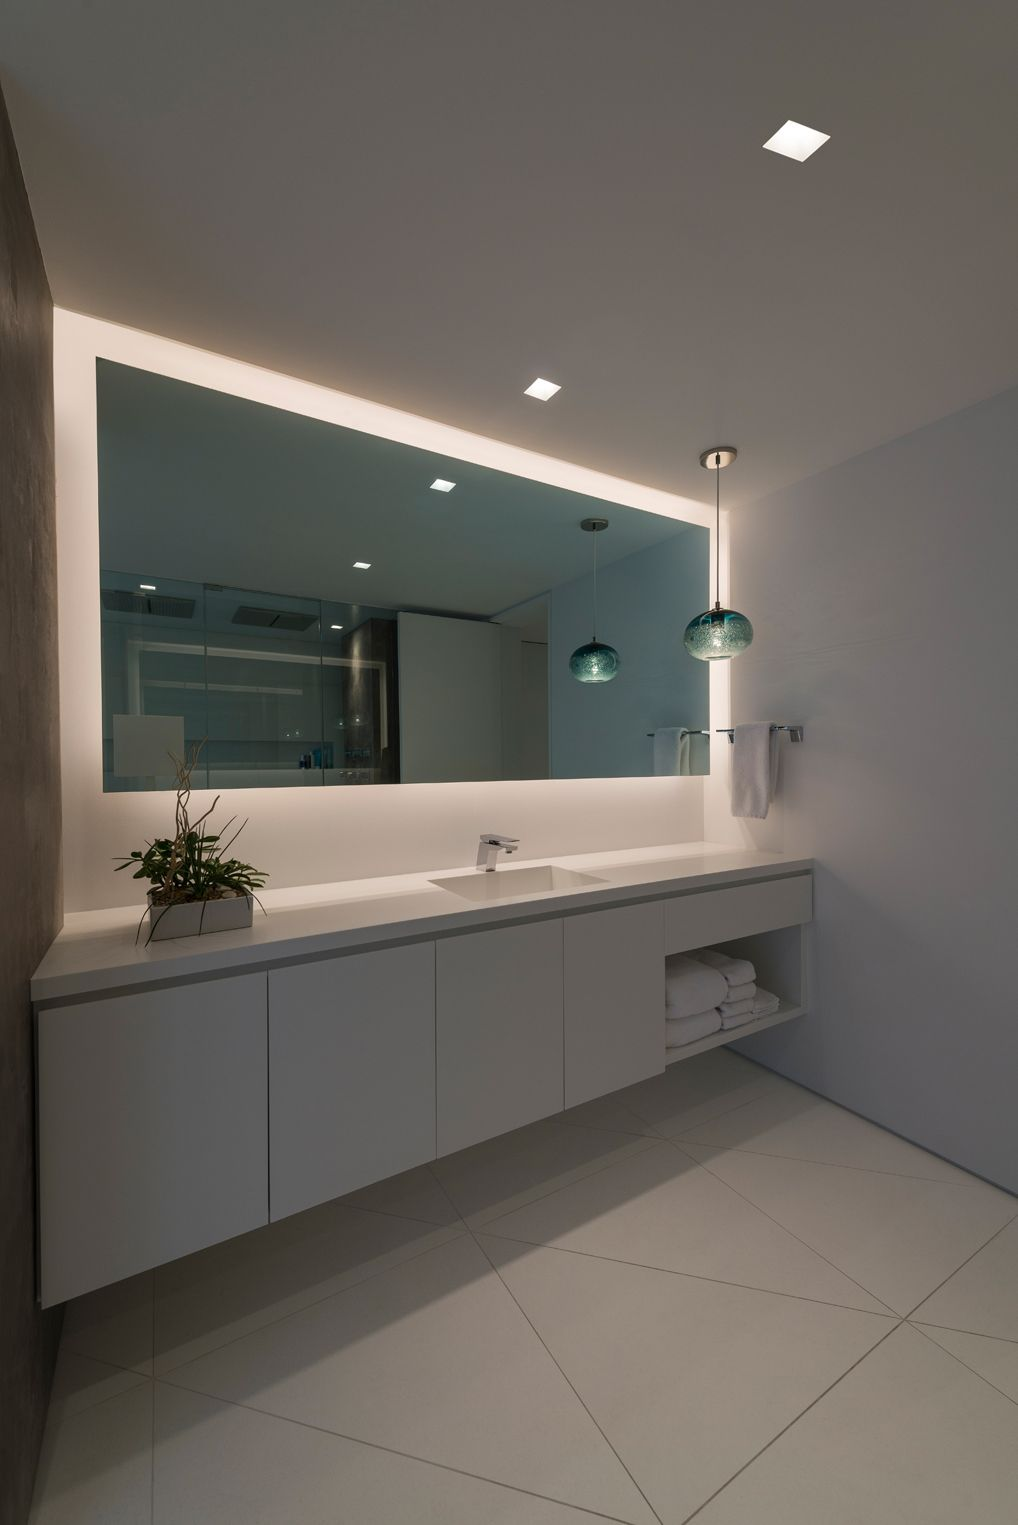 Bathroom Lighting Is Essential And Cannot Be Overlooked Why What